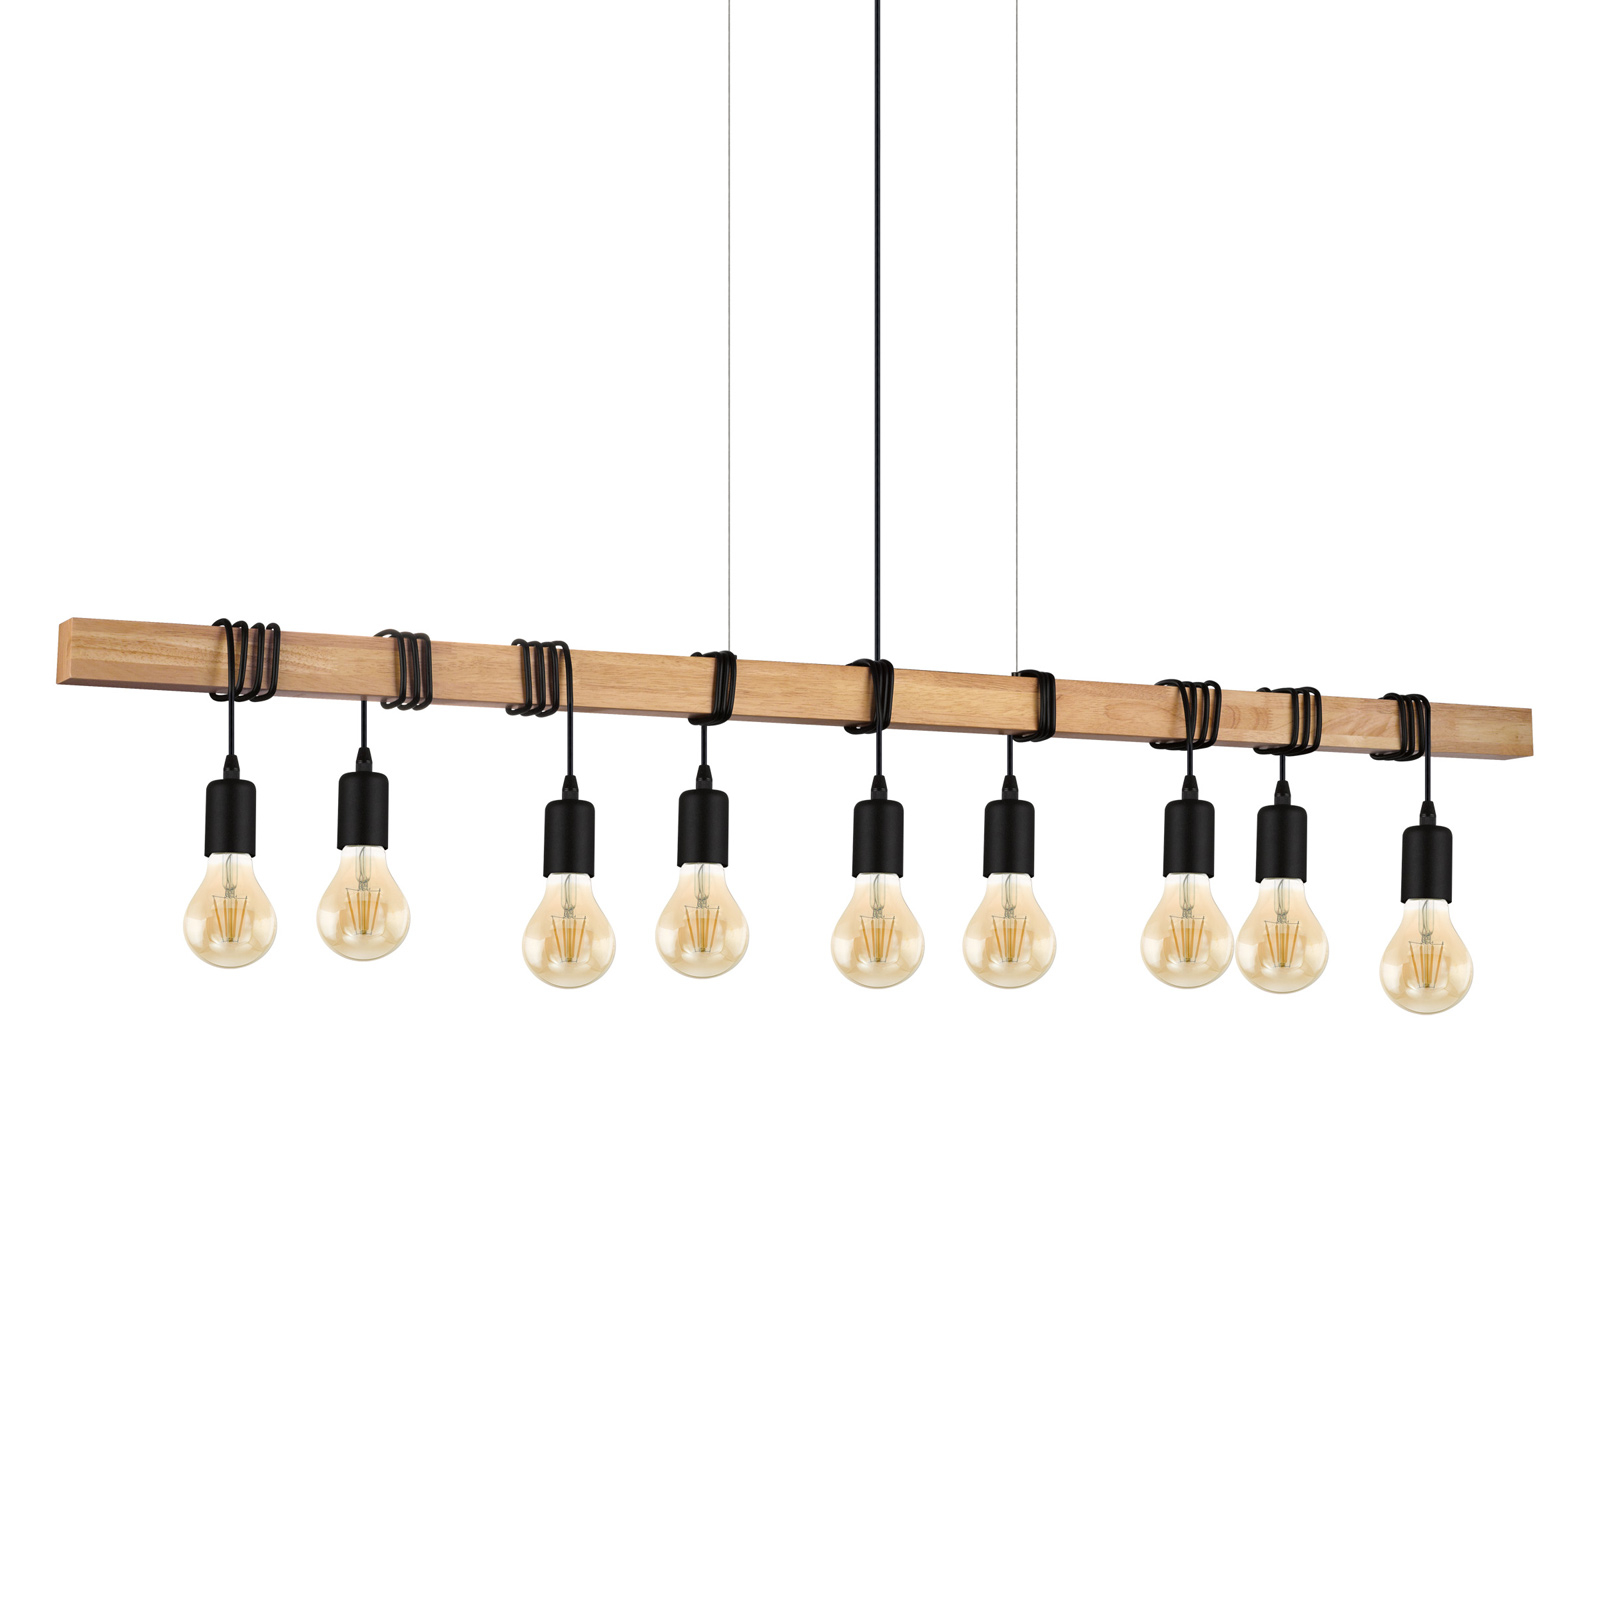 Hanglamp Townshend met hout, 9-lamps